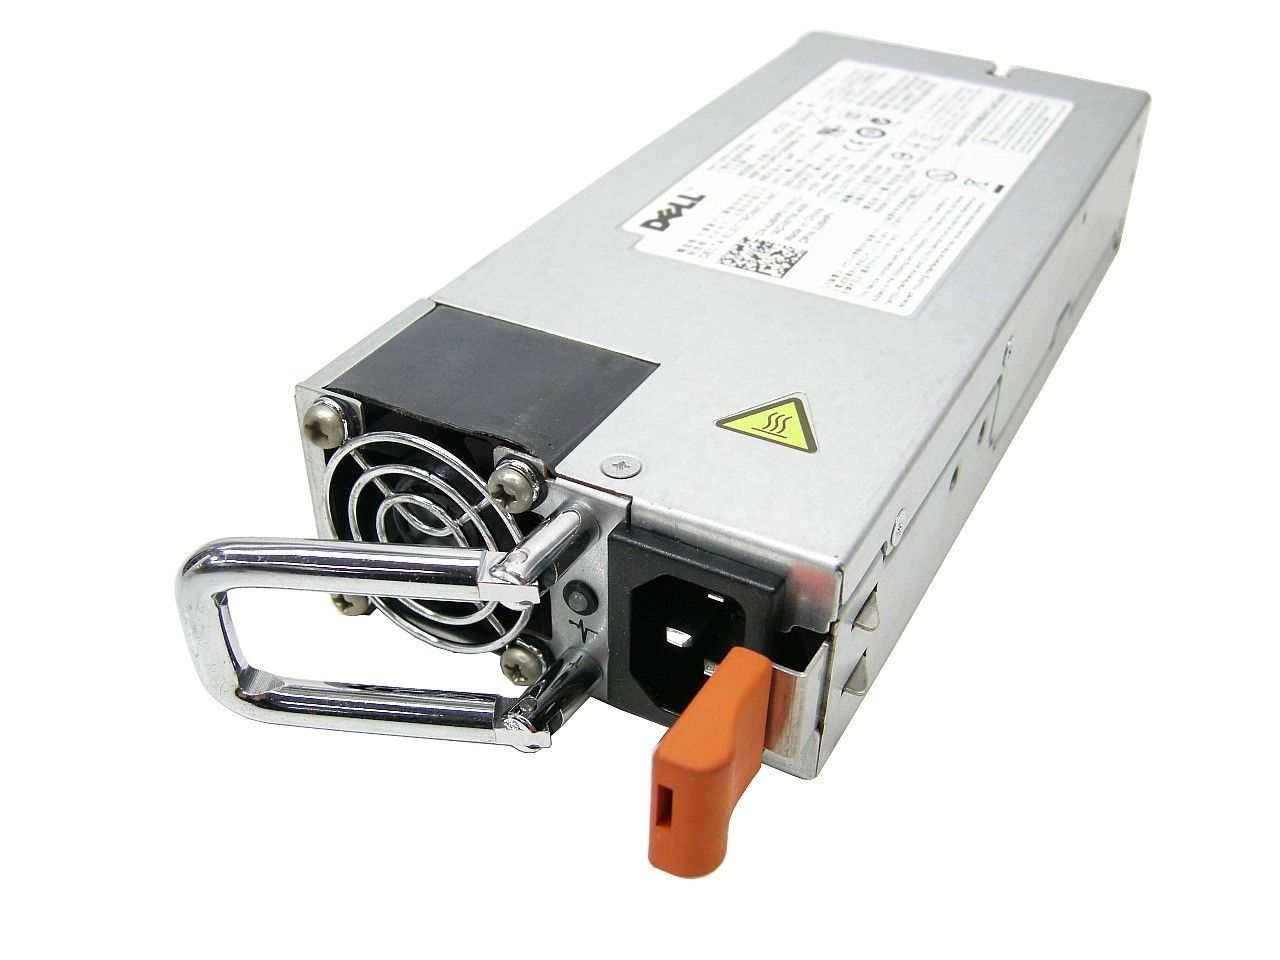 Рис. 6. DELL DPS-1200MB A